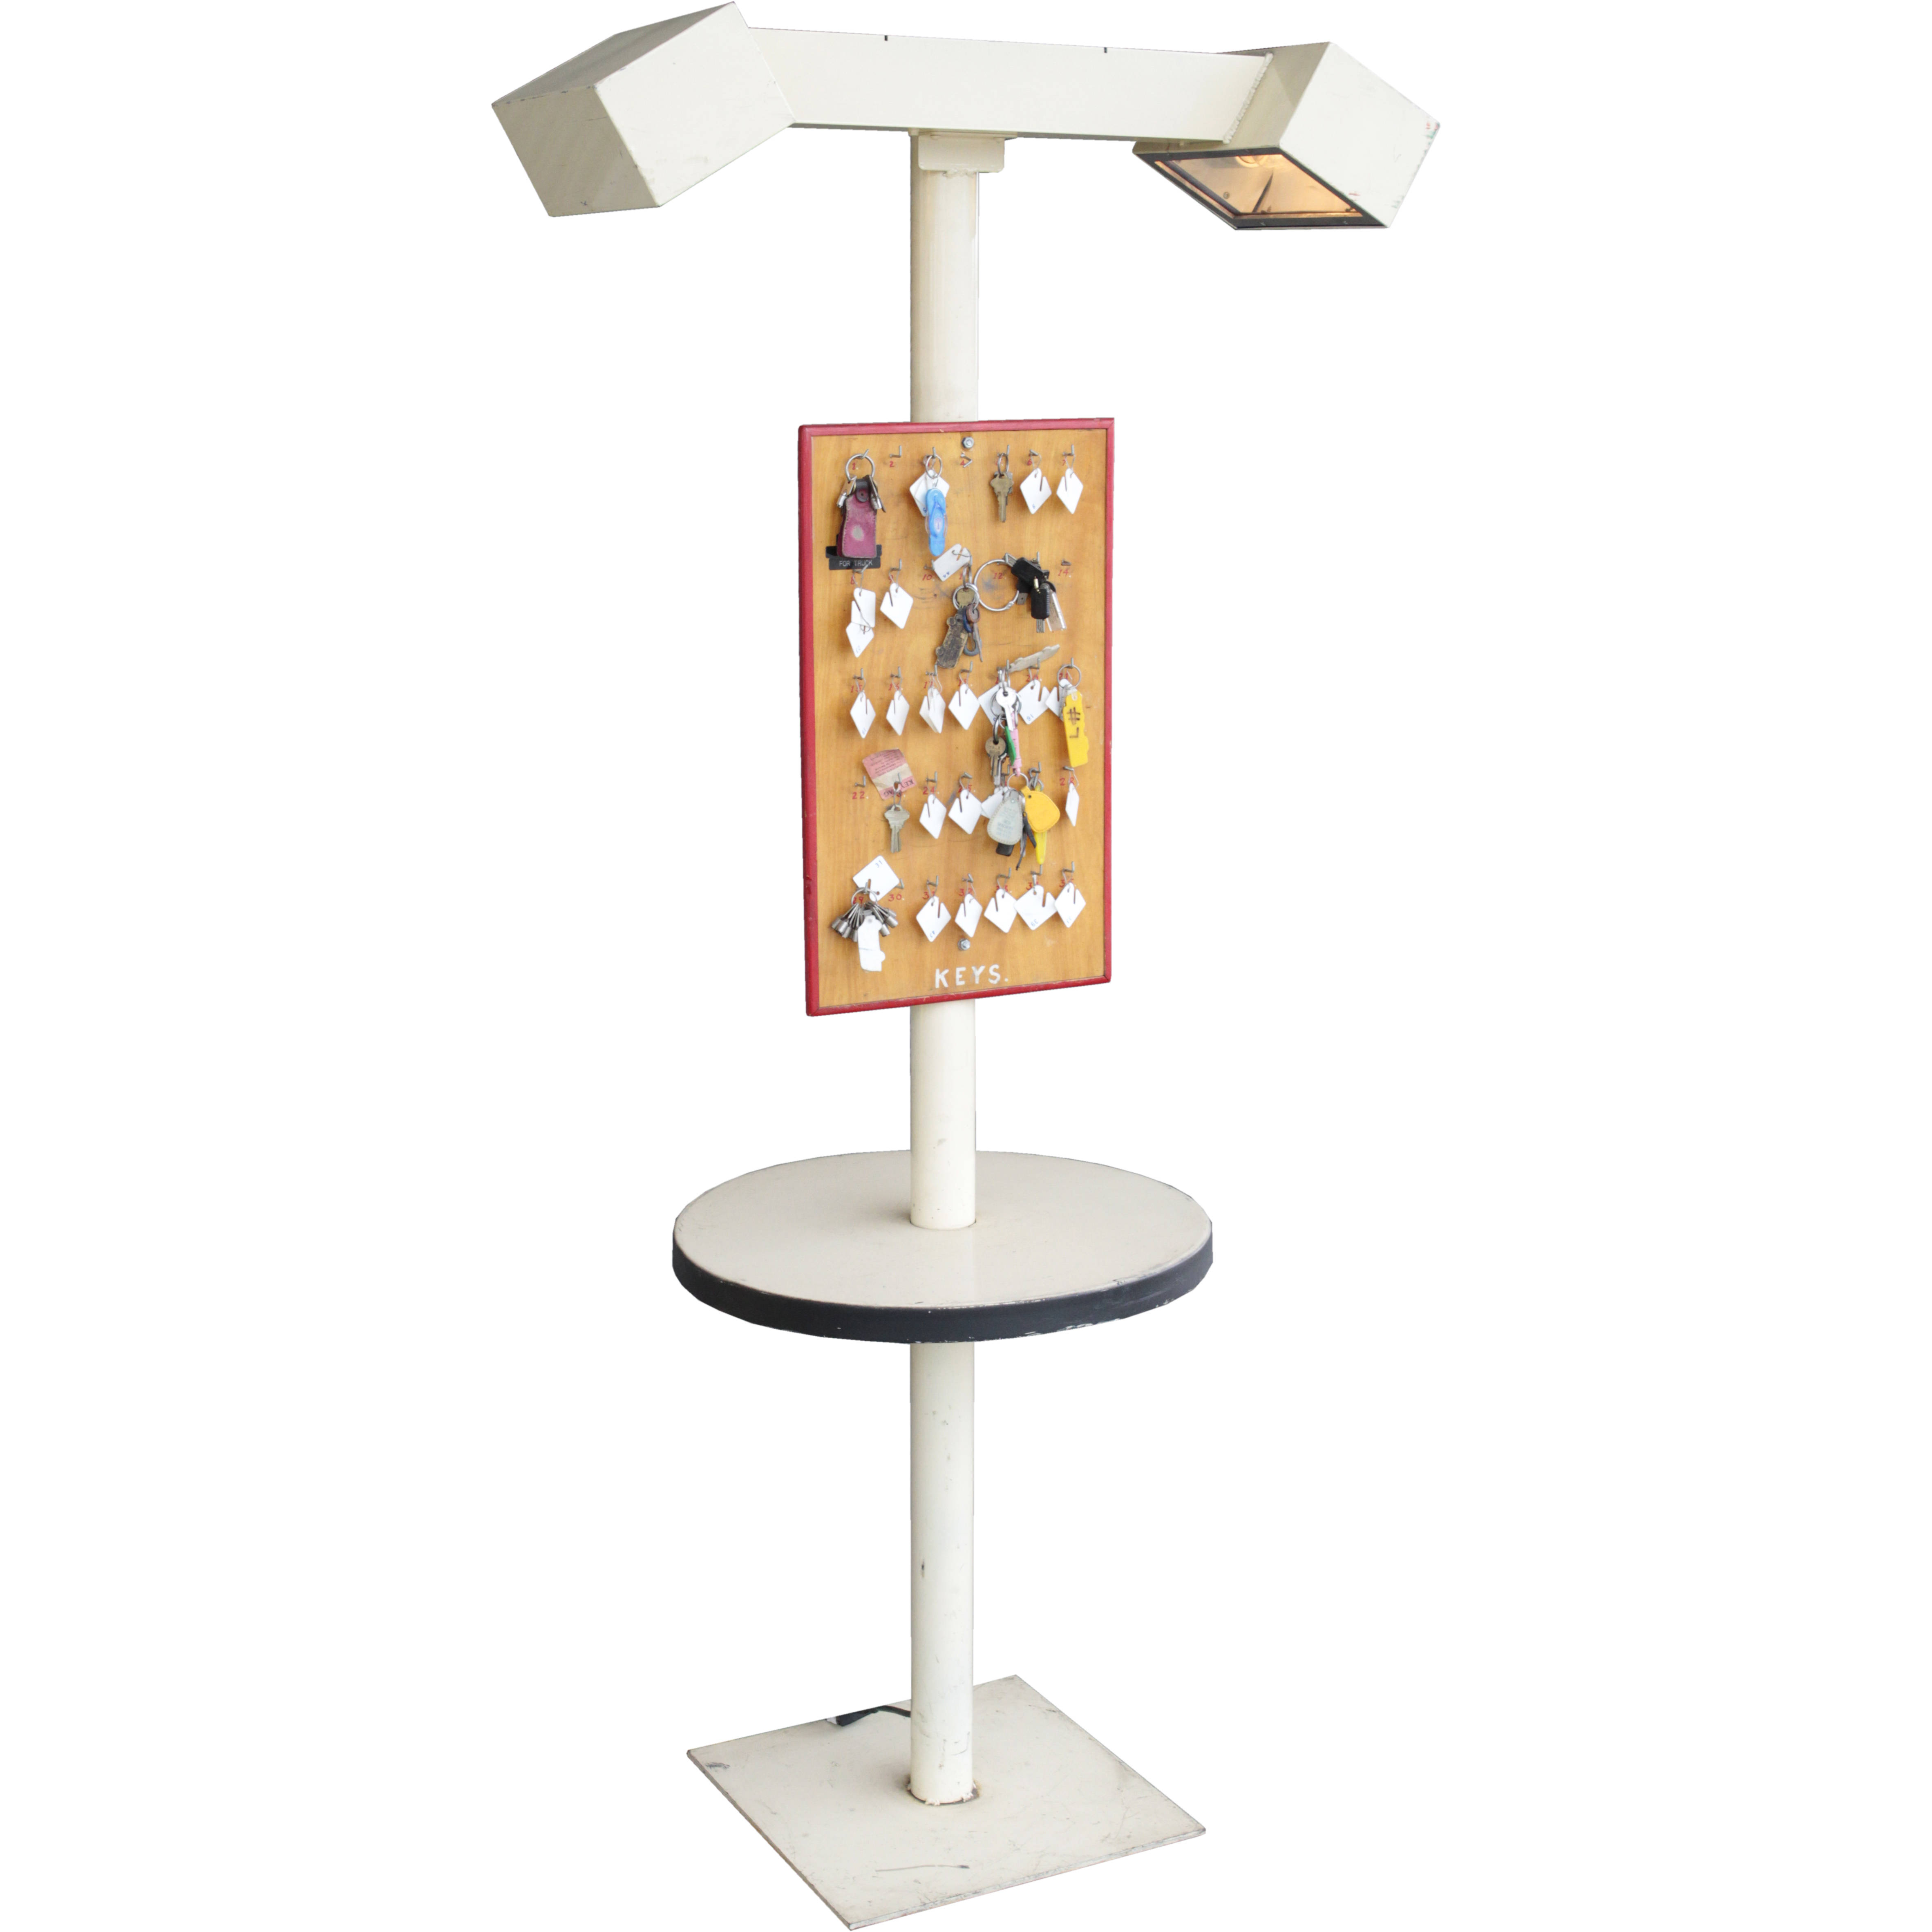 Key Stand Designs : Valet stand w lights keyboard air designs